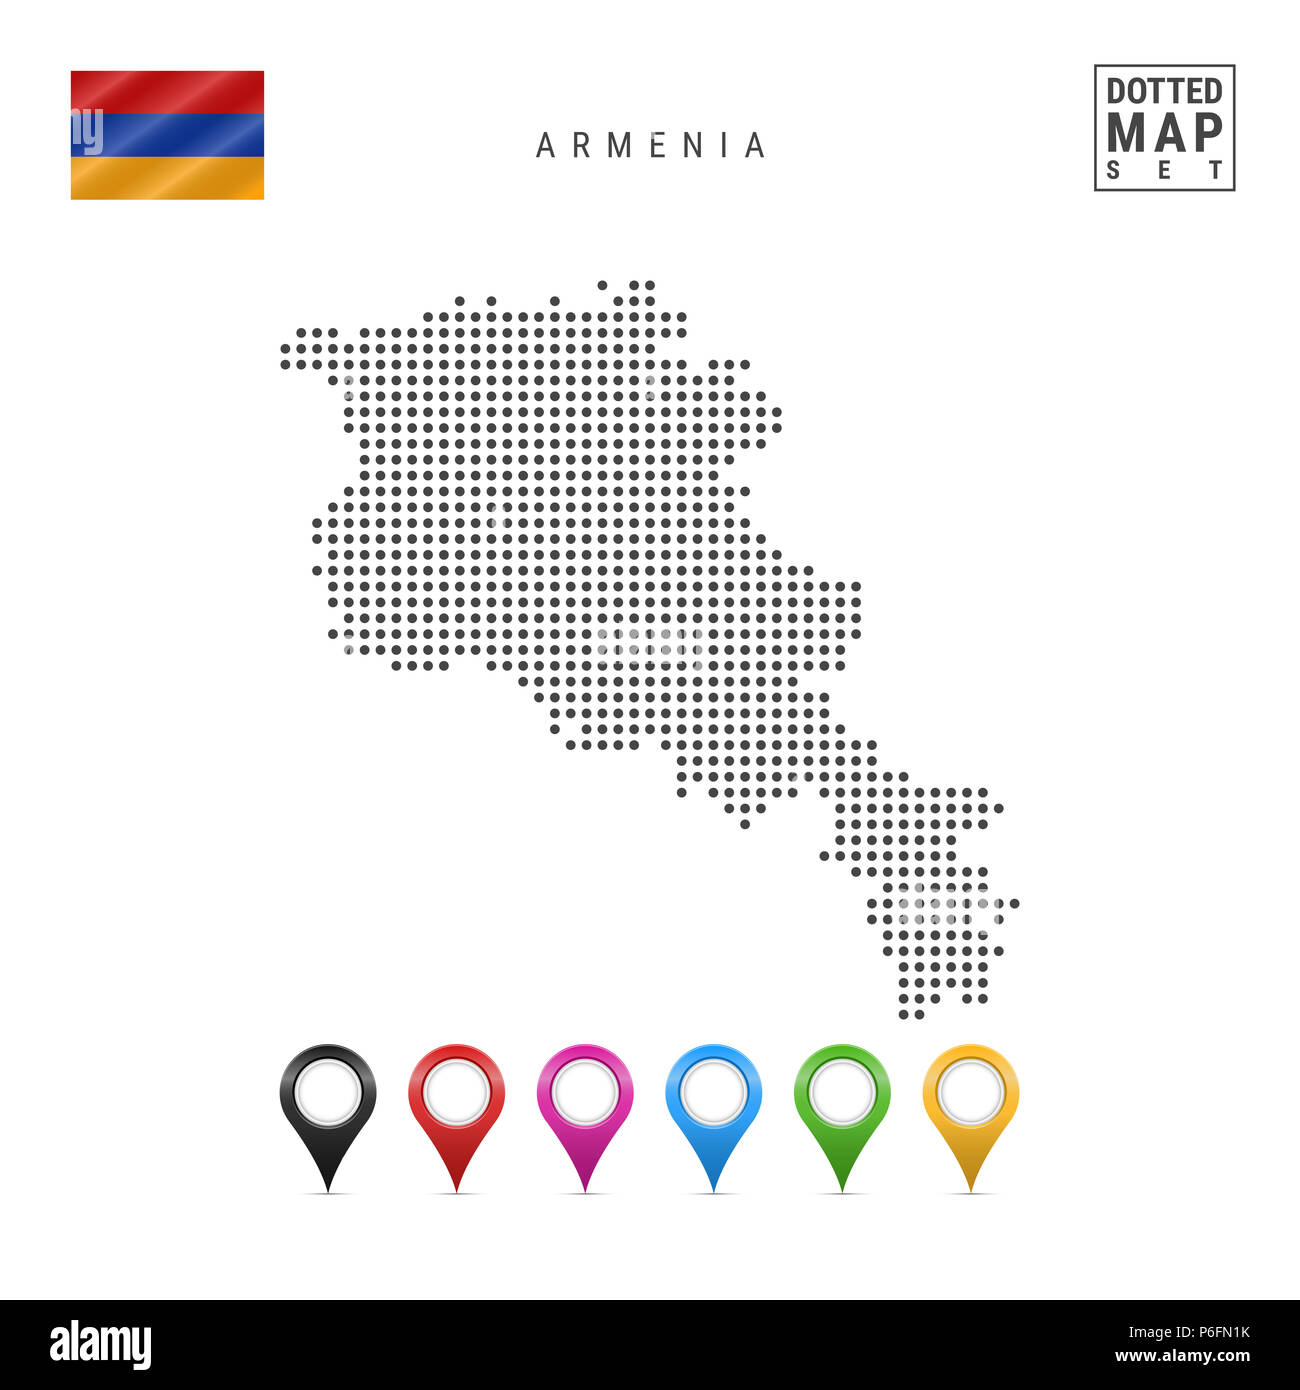 Dotted Map of Armenia. Simple Silhouette of Armenia. The National Flag of Armenia. Set of Multicolored Map Markers. Illustration Isolated on White Bac Stock Photo